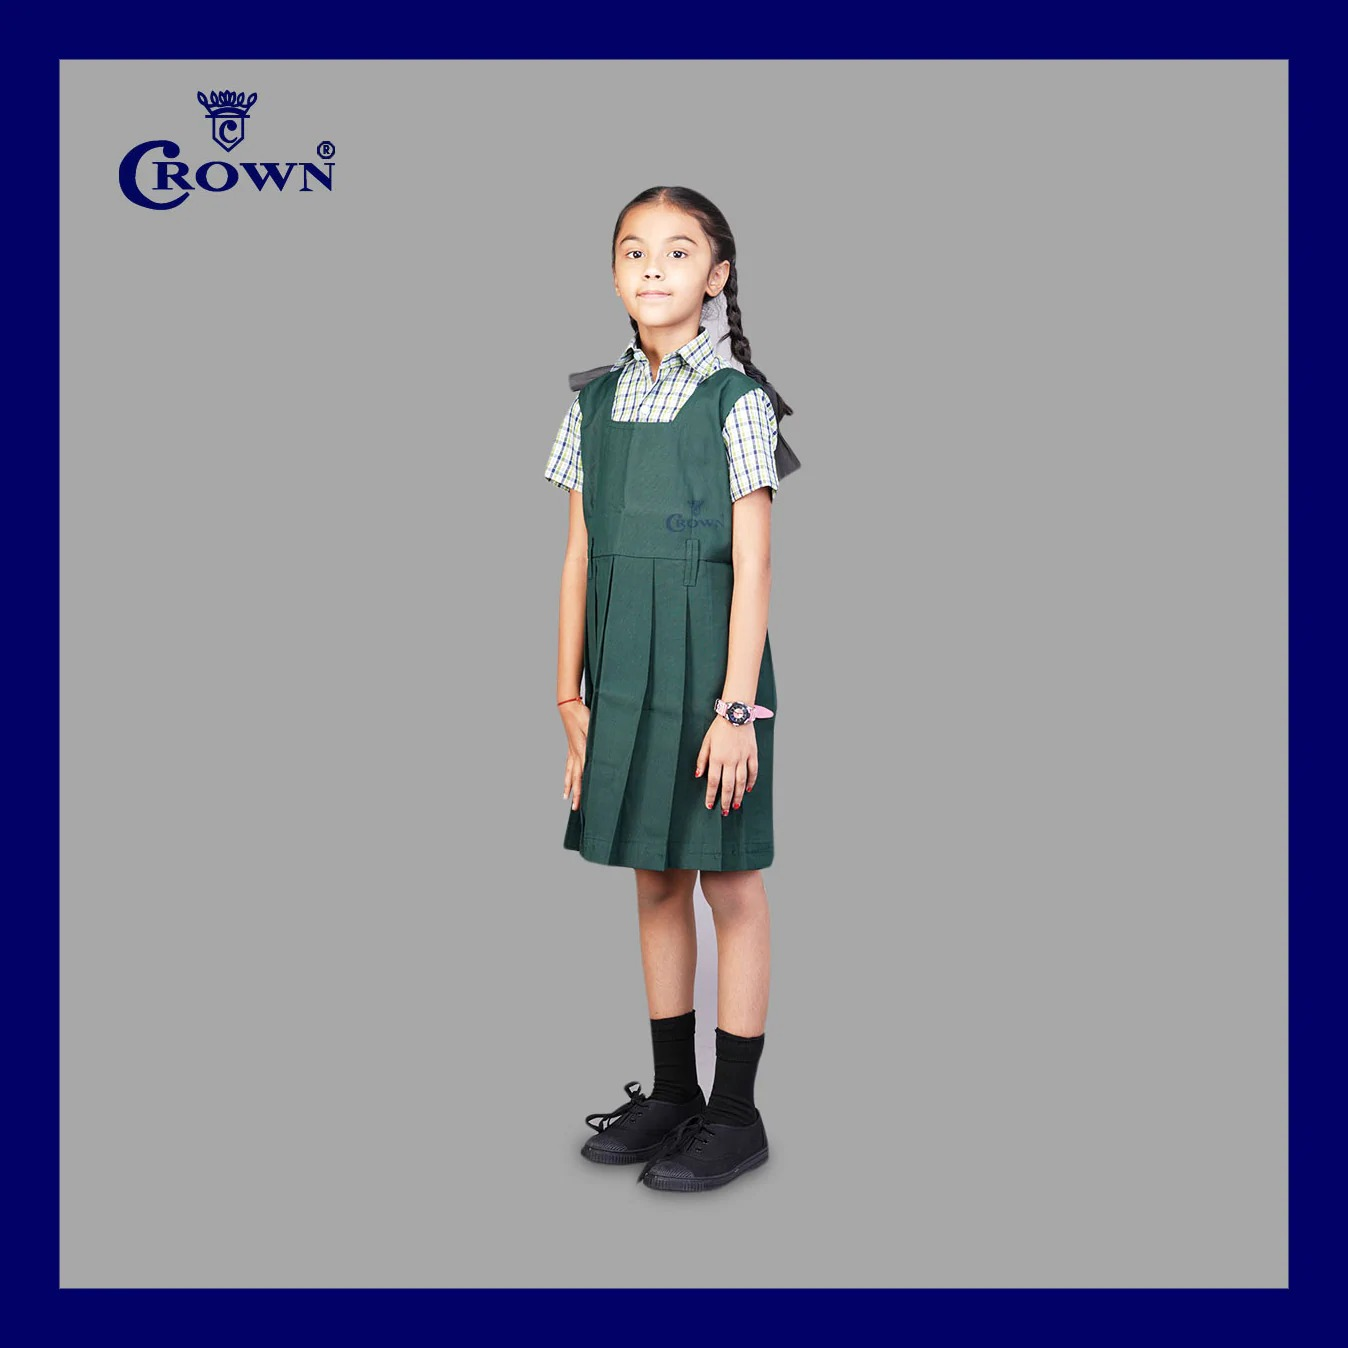 Crown TN Govt 1 - 5thStd Bottle Green Colour Pinafore (5-6 Years)